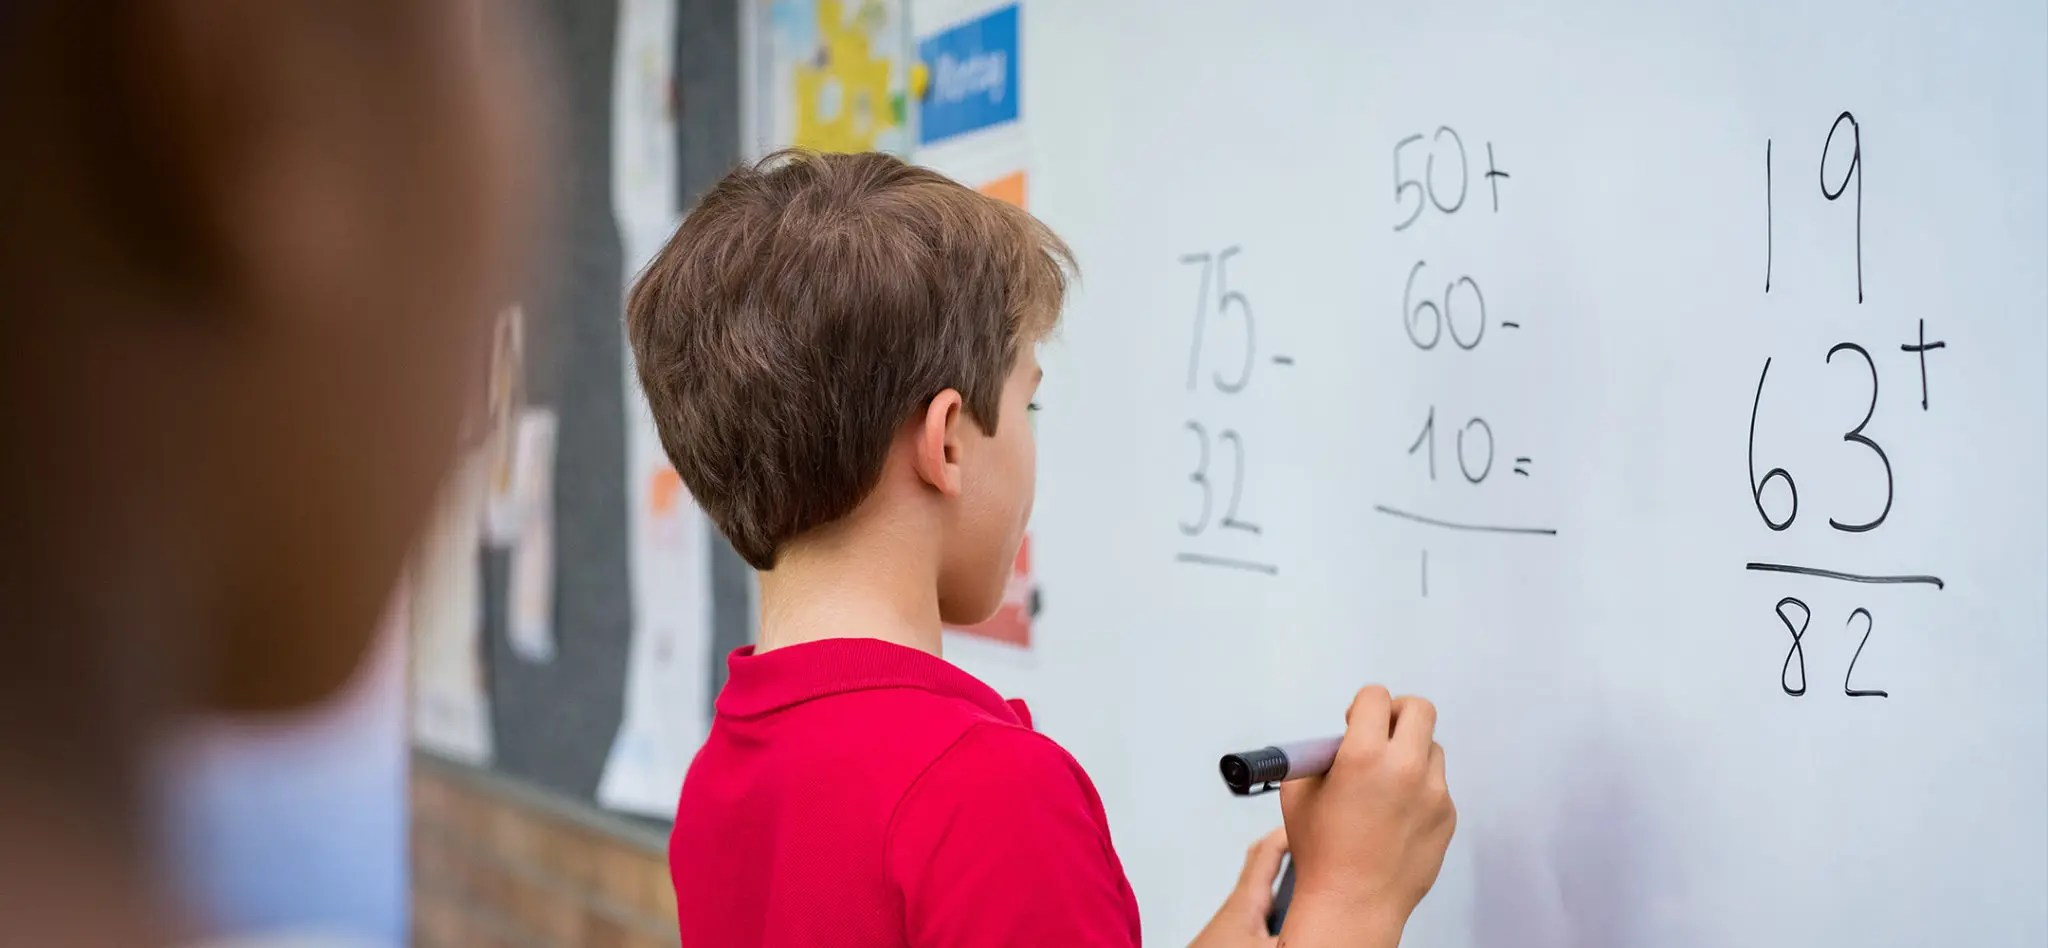 Rear view of young boy solving addition and subtraction on white board at school.